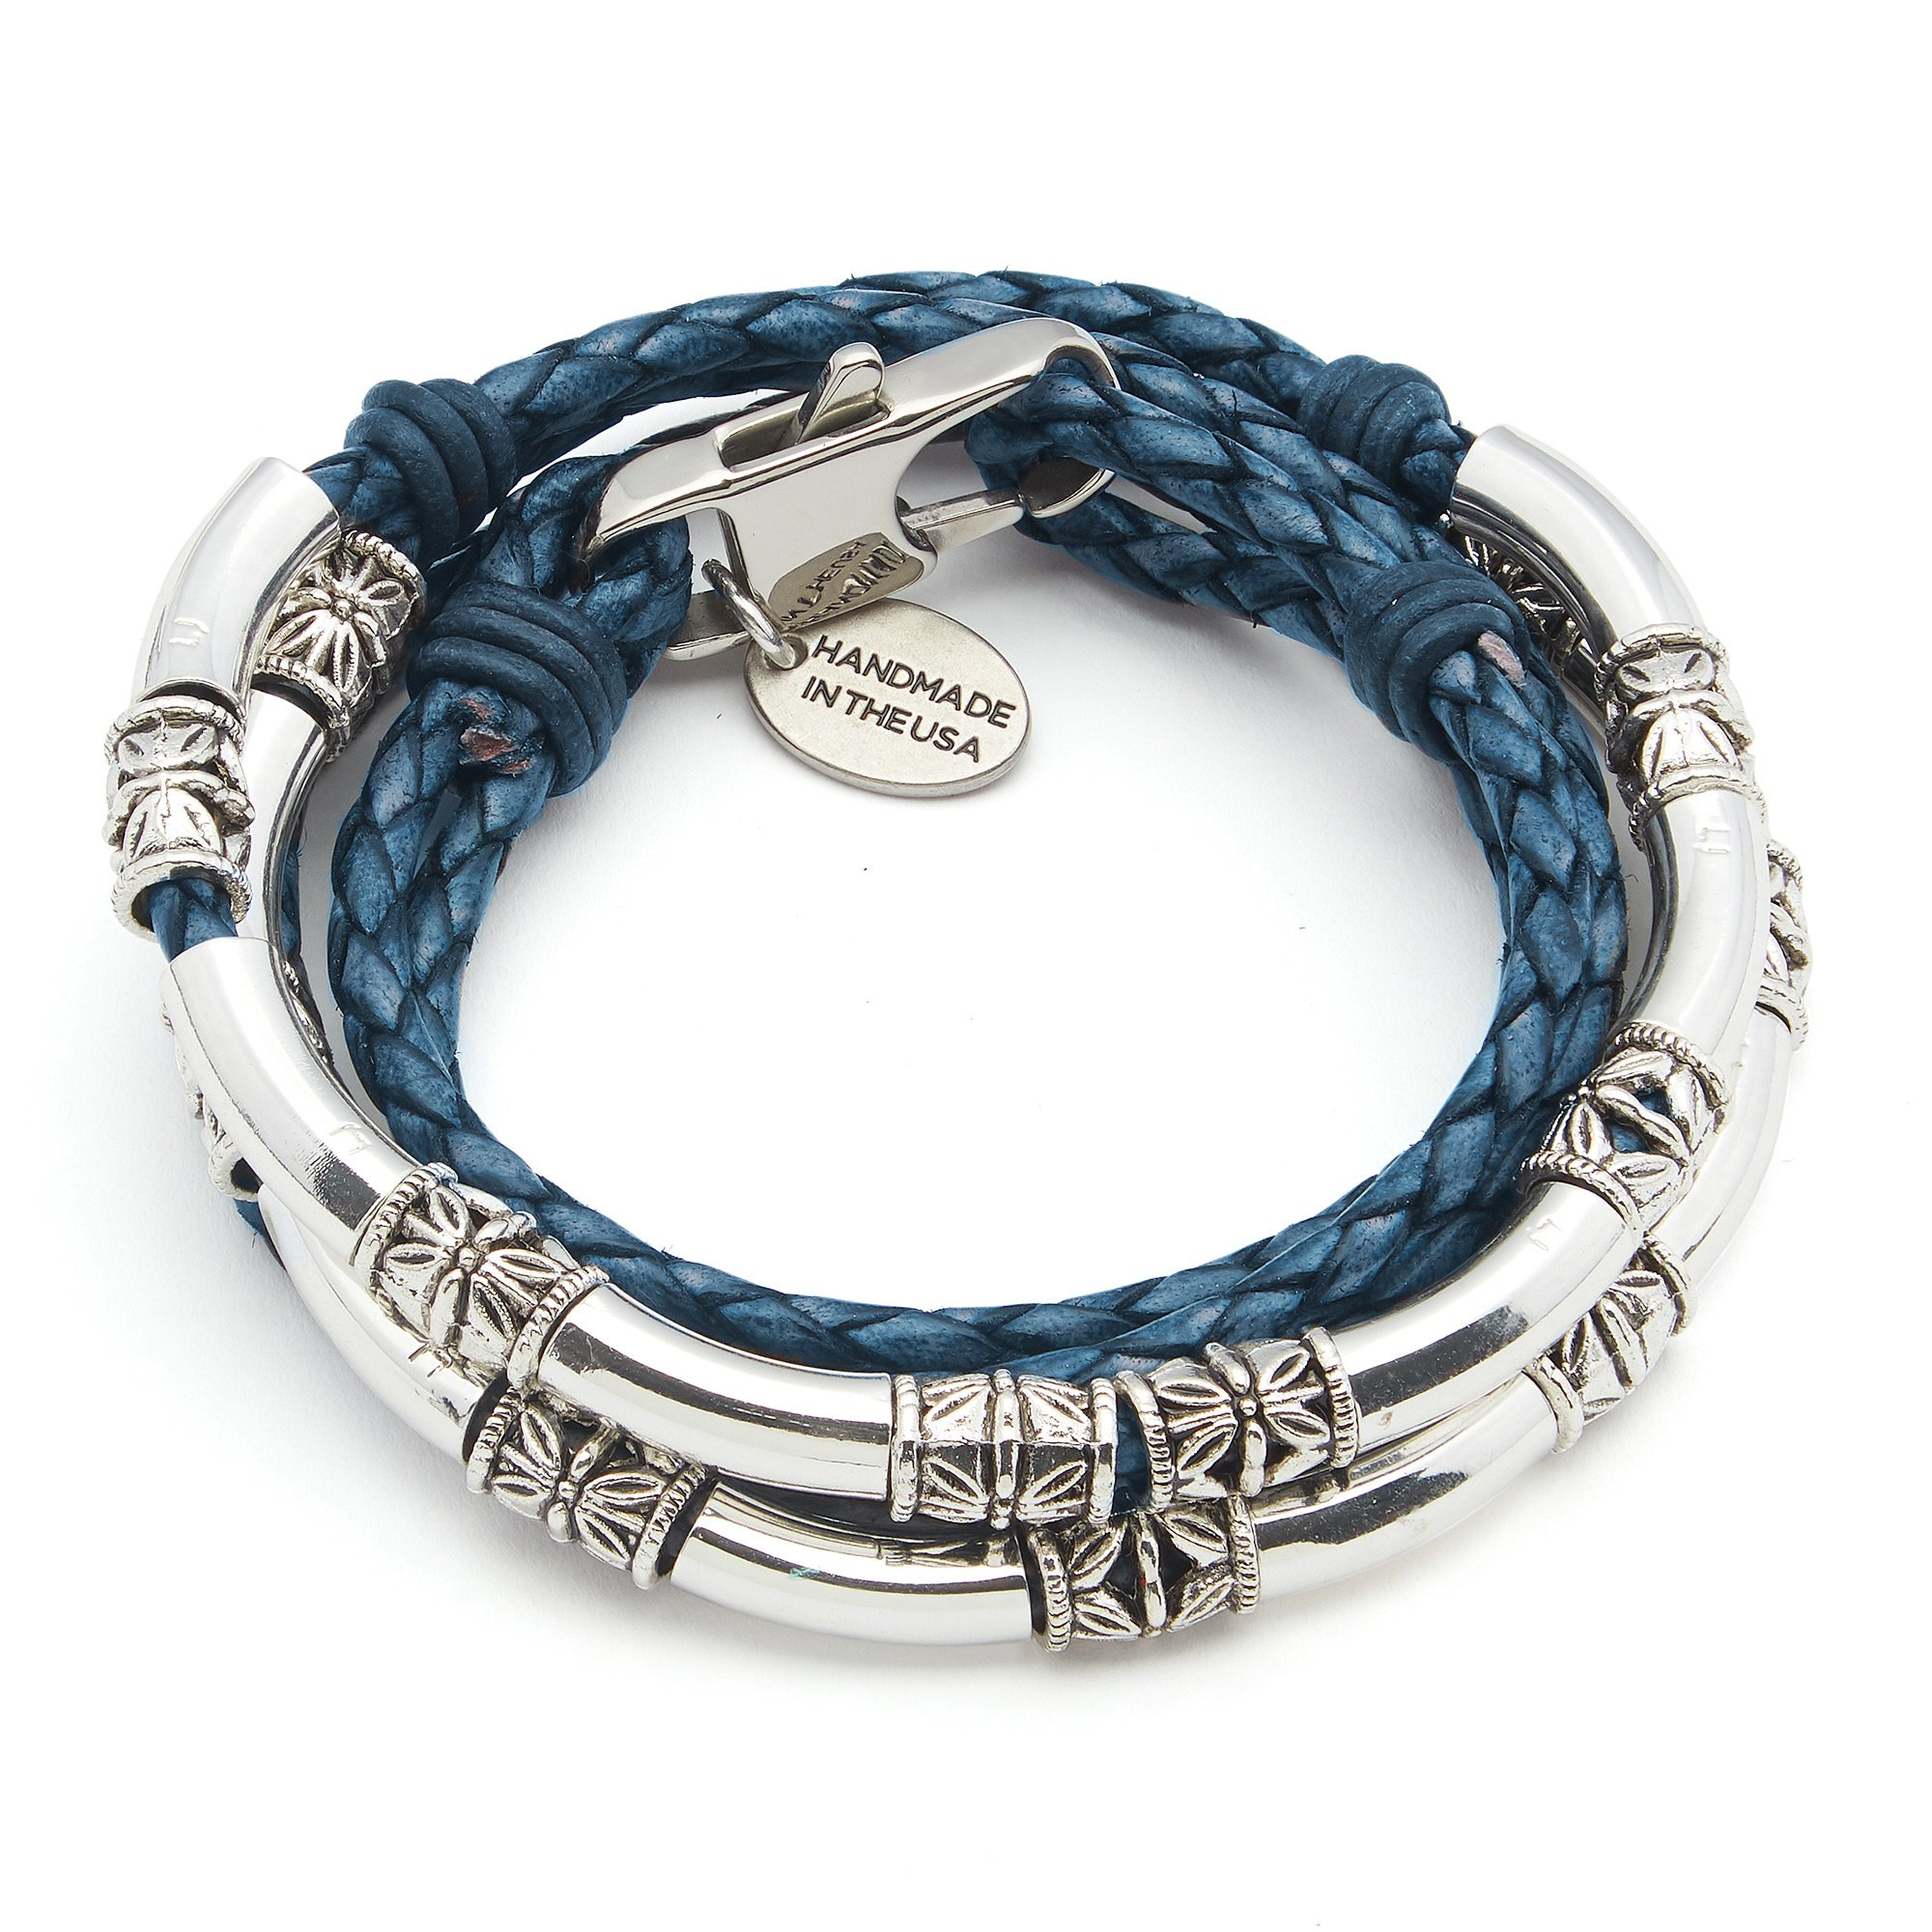 Lizzy James Mini Maxi Silver Plated Braided Leather Wrap Bracelet in Natural Blue Leather (Medium)